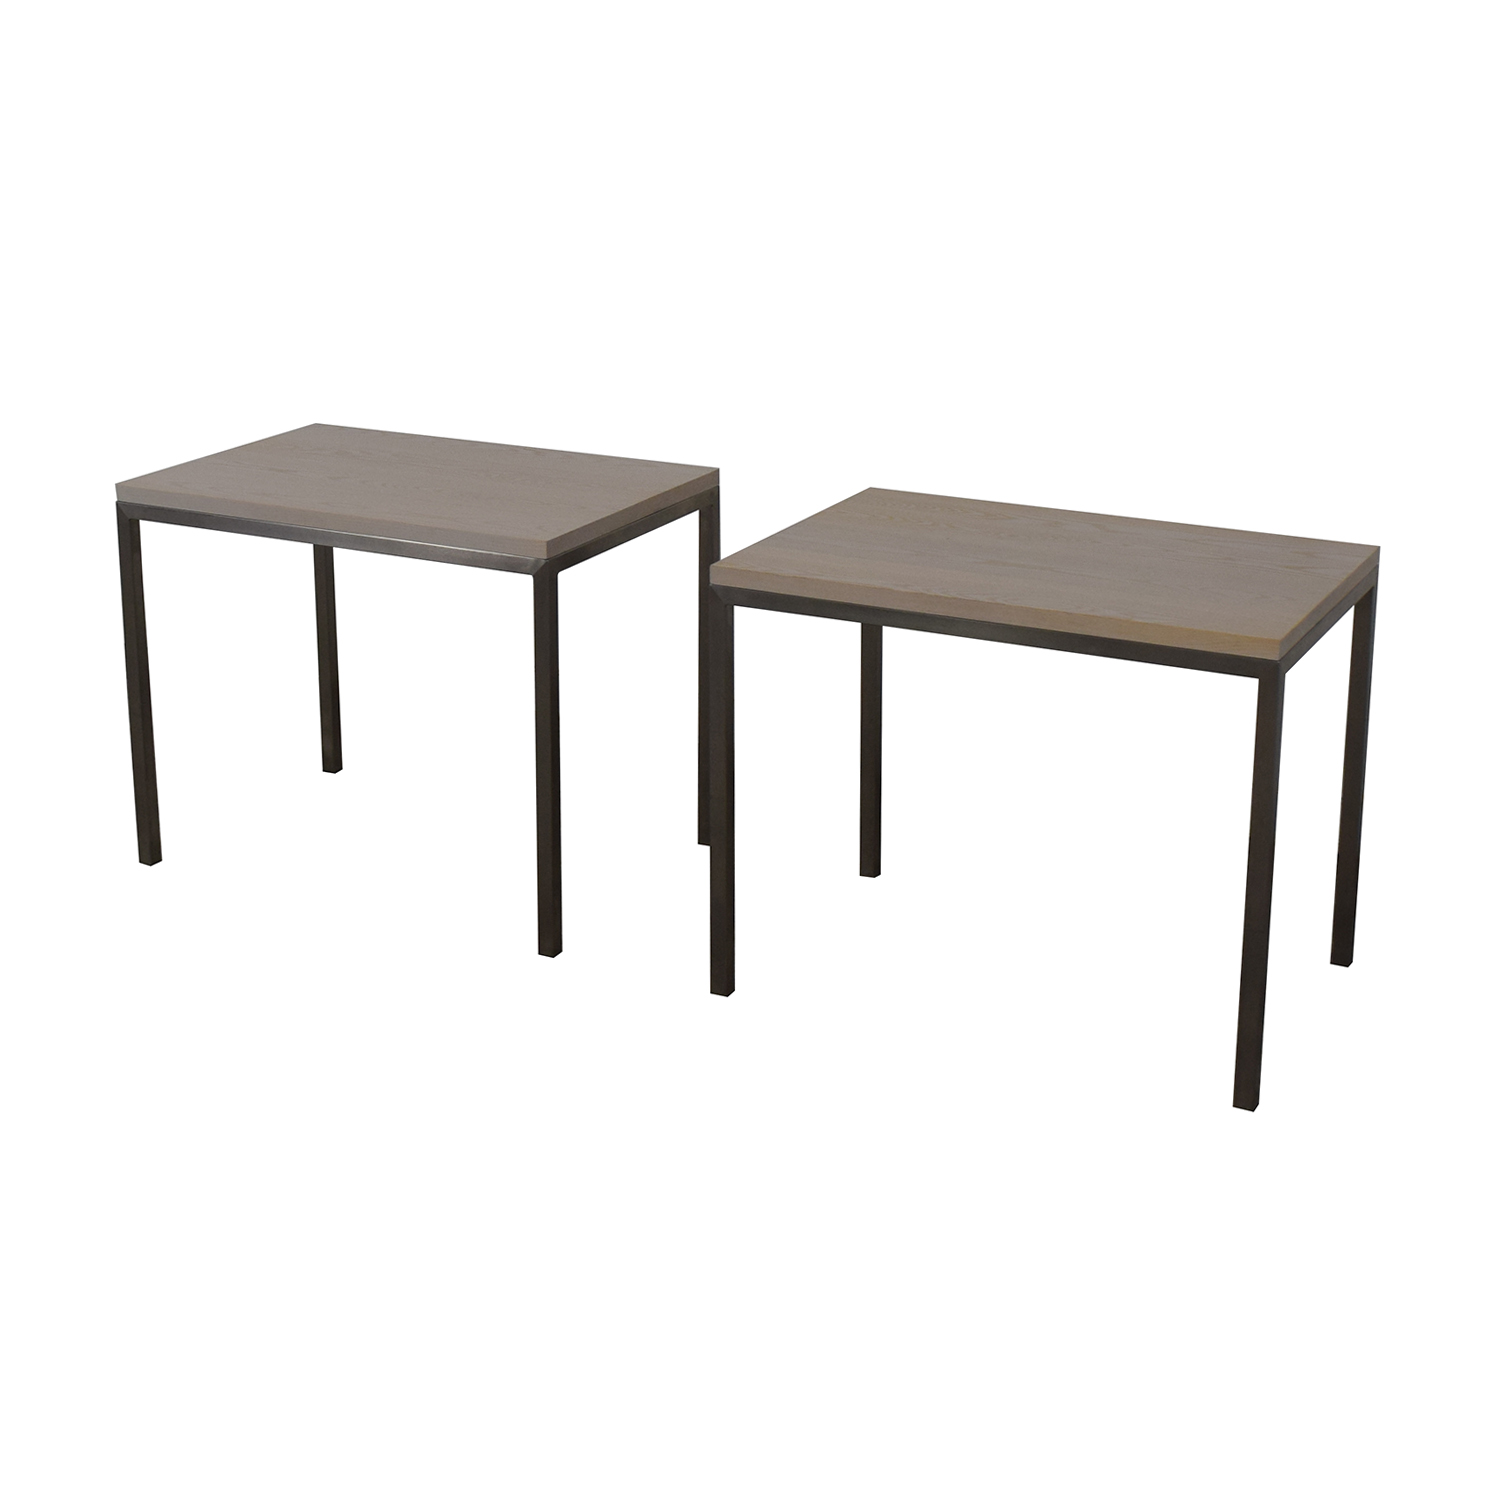 Room & Board Room & Board Portica End Tables